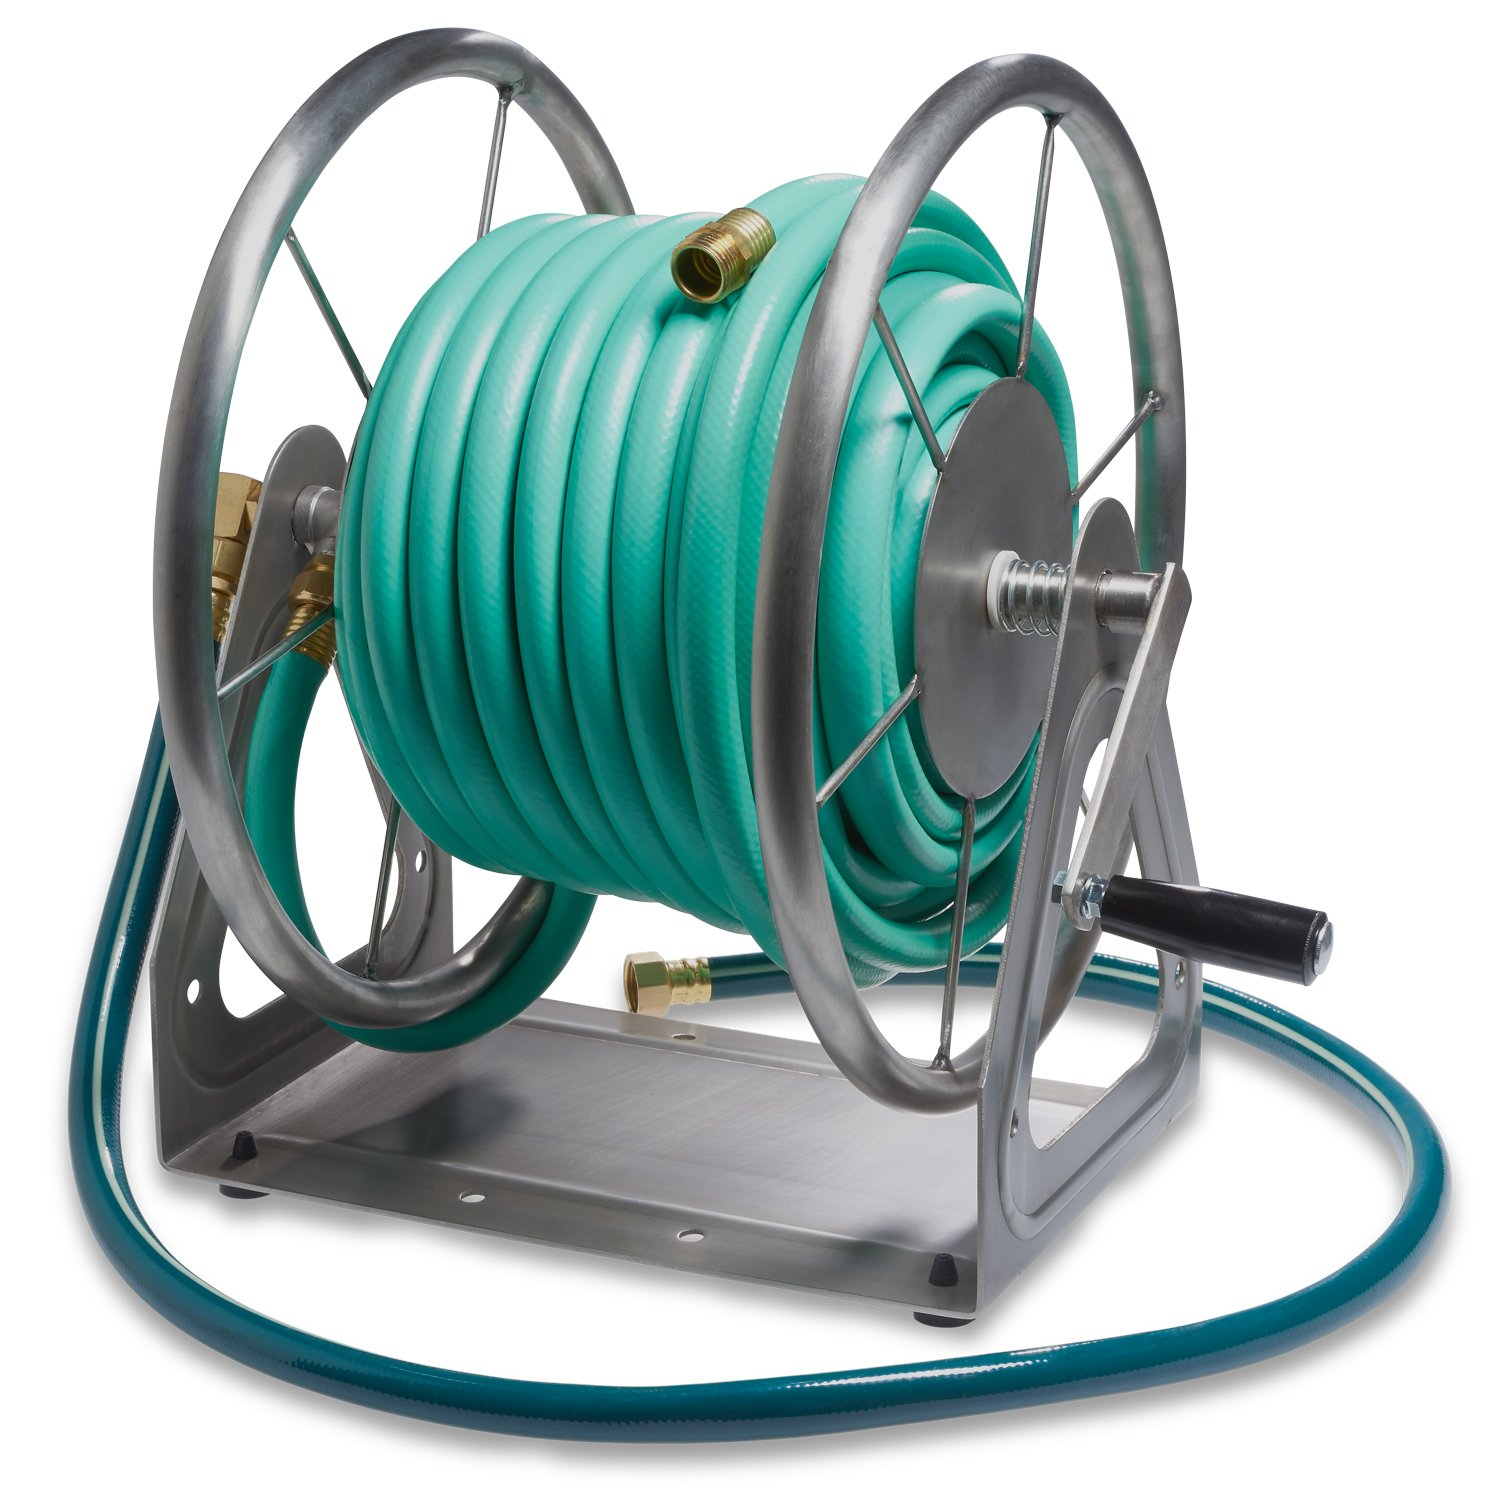 Liberty Garden Products 703-S2 Multi-Purpose Steel Wall and Floor Mount Garden Hose Reel, Holds 200-Feet of 5/8-Inch Hose - Stainless by Liberty Garden Products